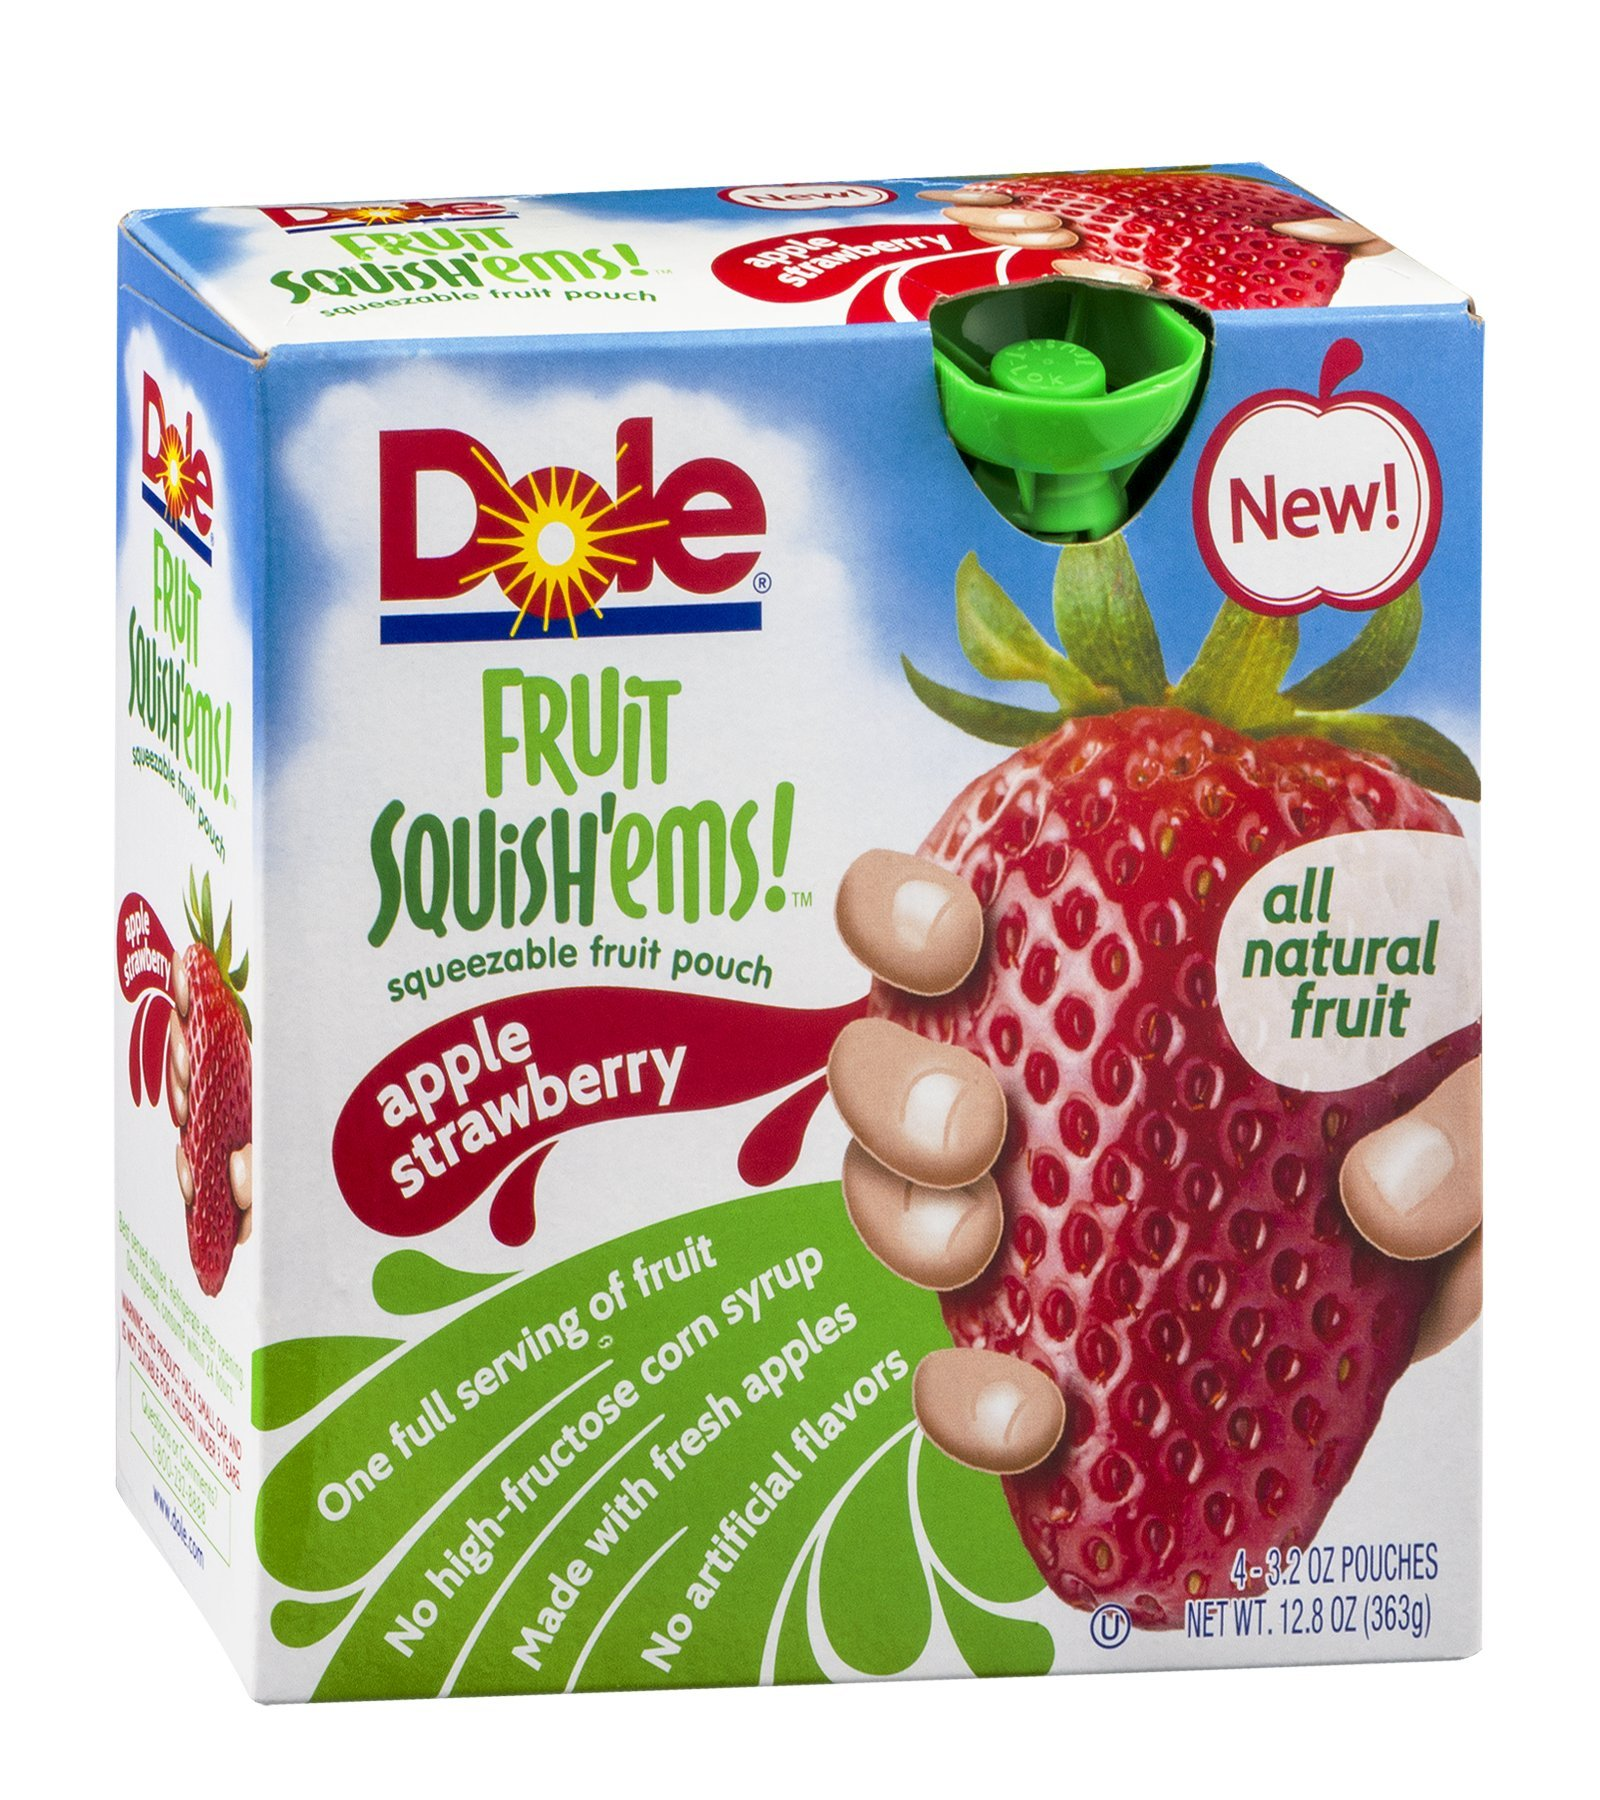 Dole Fruit Squish'ems! Squeezable Fruit Pouch Apple Strawberry 12.8 OZ (Pack of 24) by Dole